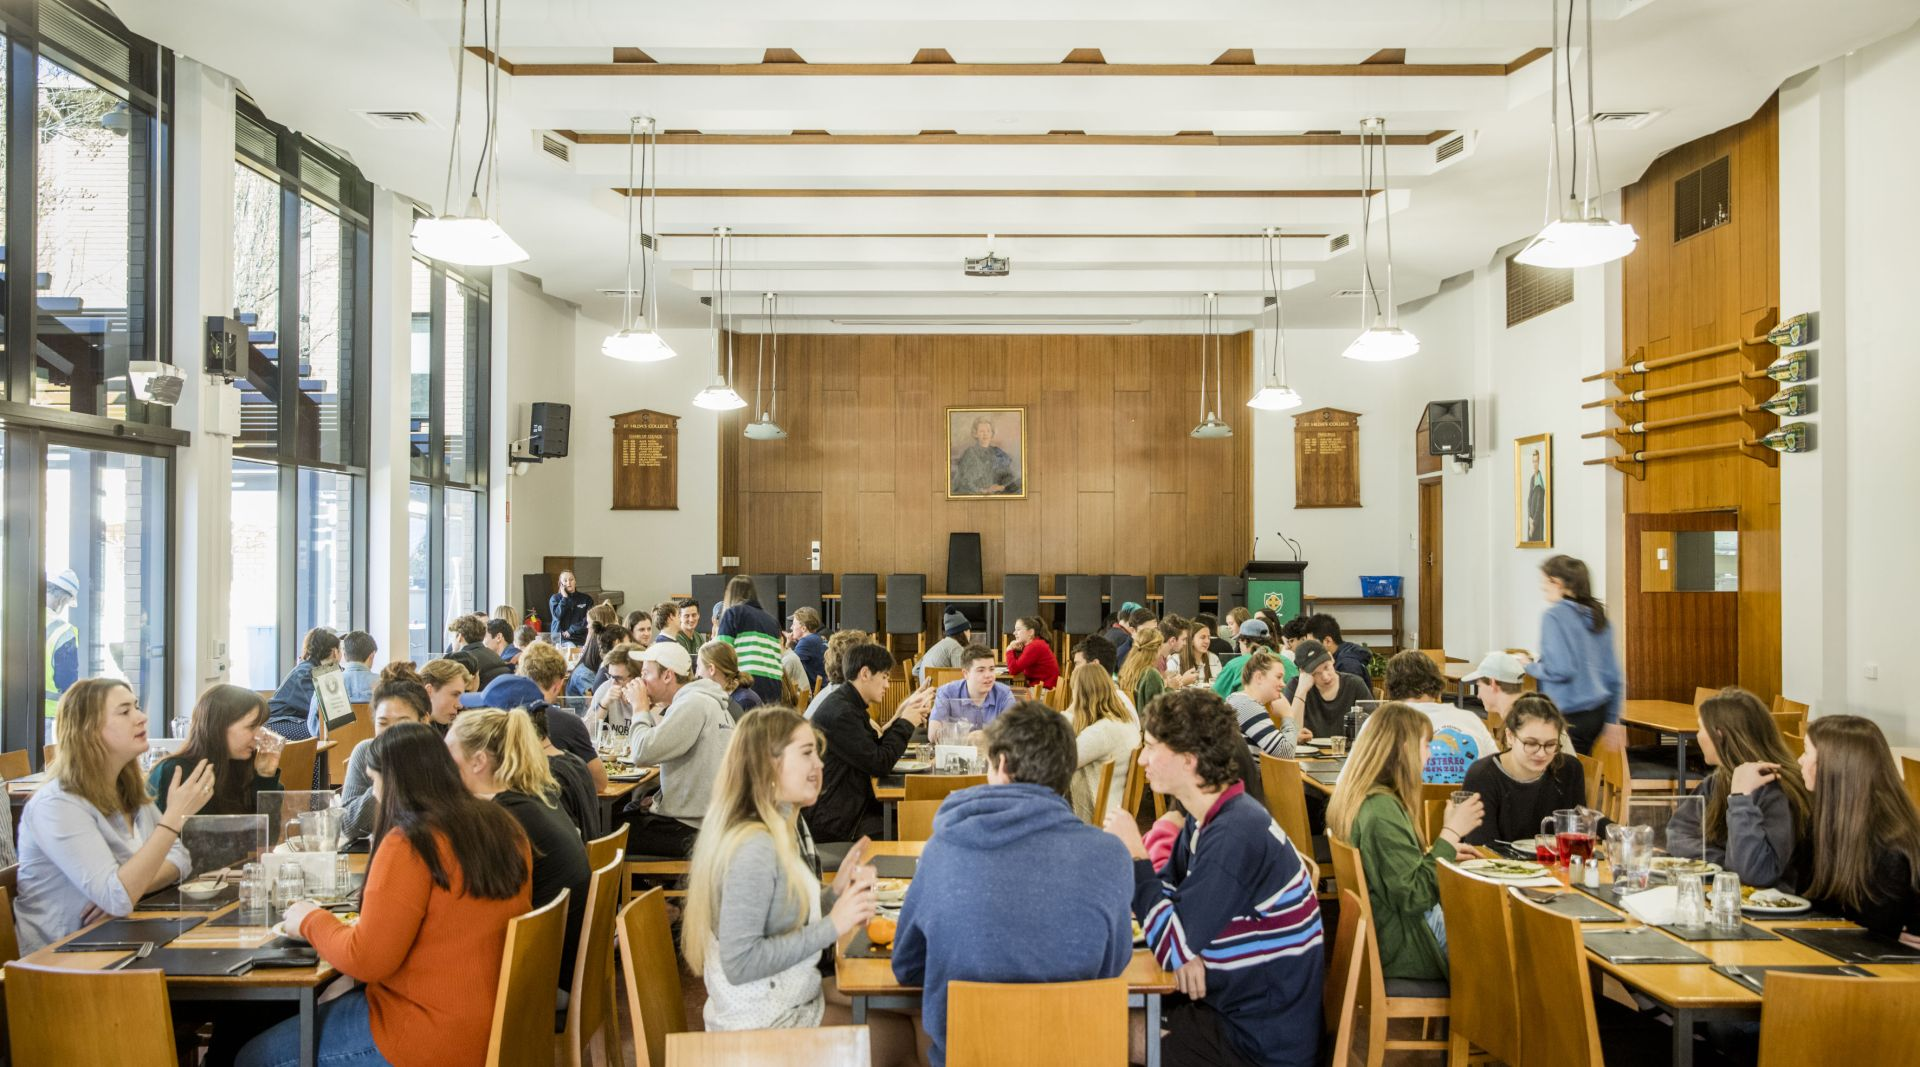 Students in the Dining Hall having lunch